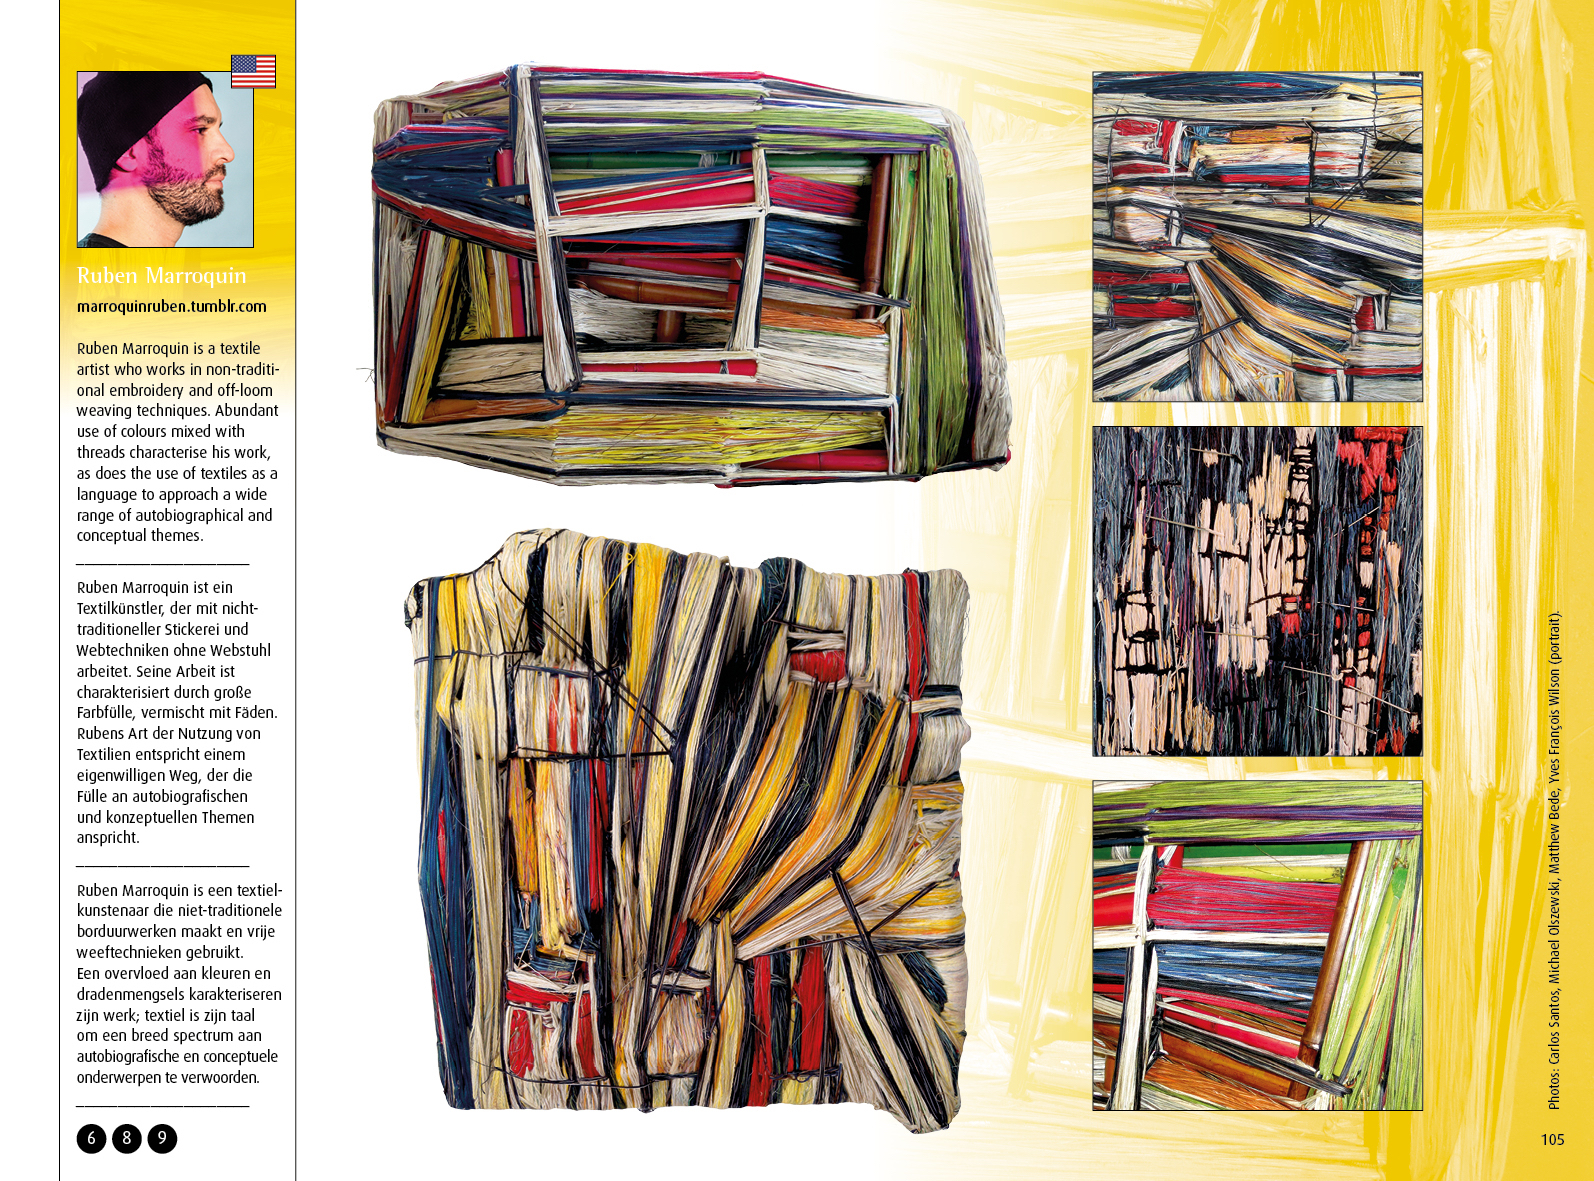 """ Textile art around the world - textile art worldwide '. The new book of textiellink www.textiellink.nl"